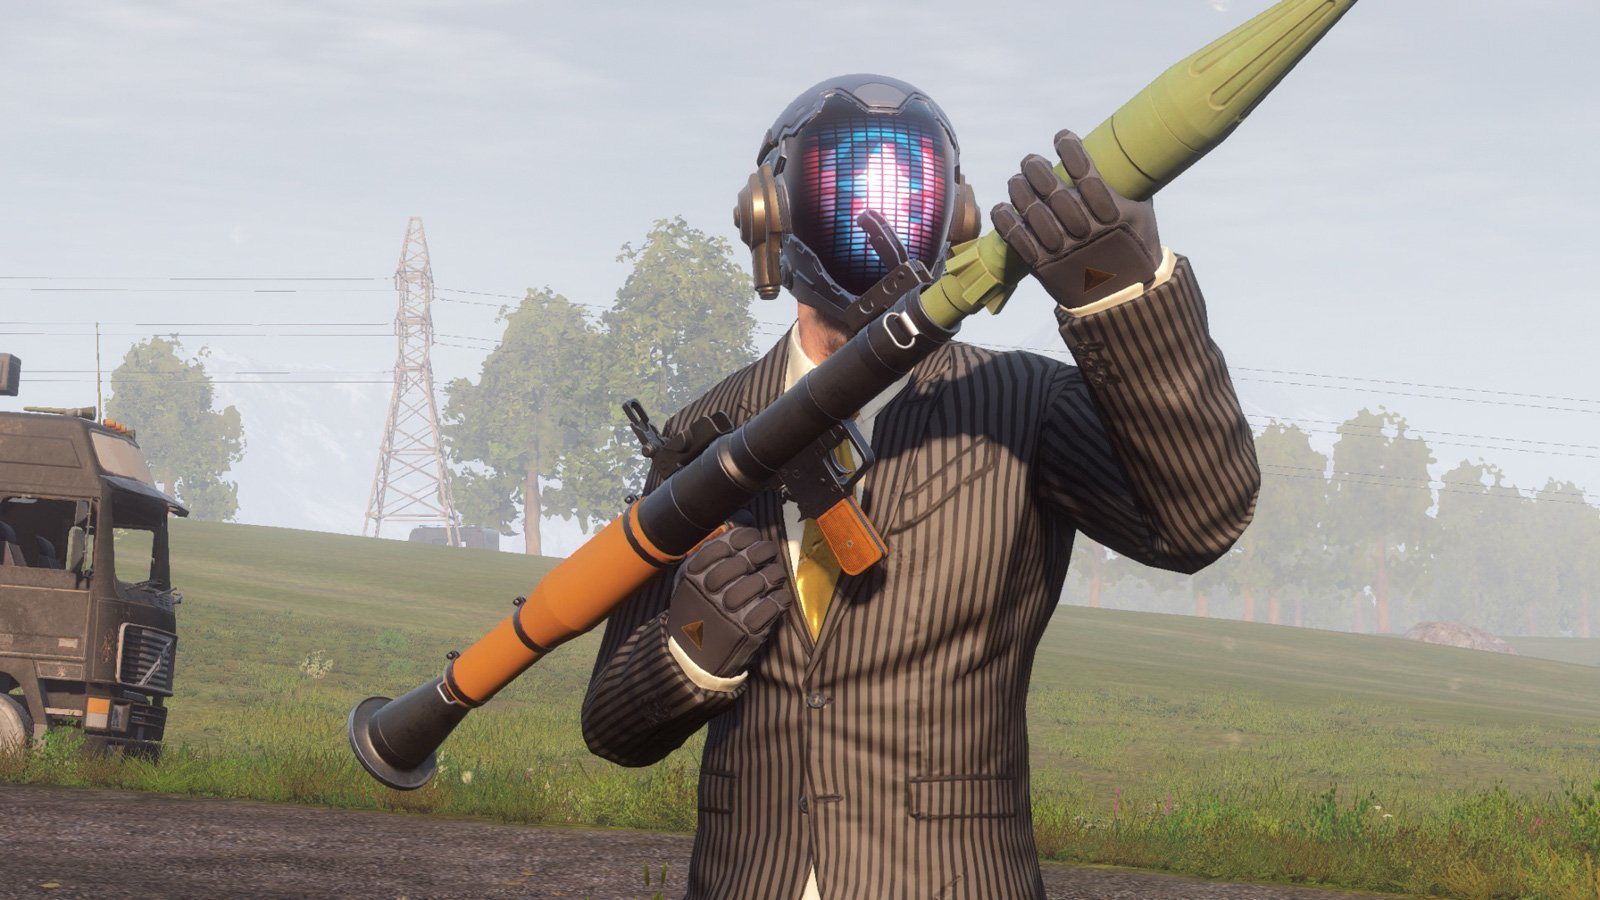 H1Z1 and EverQuest are getting shrunk down for mobile devices screenshot